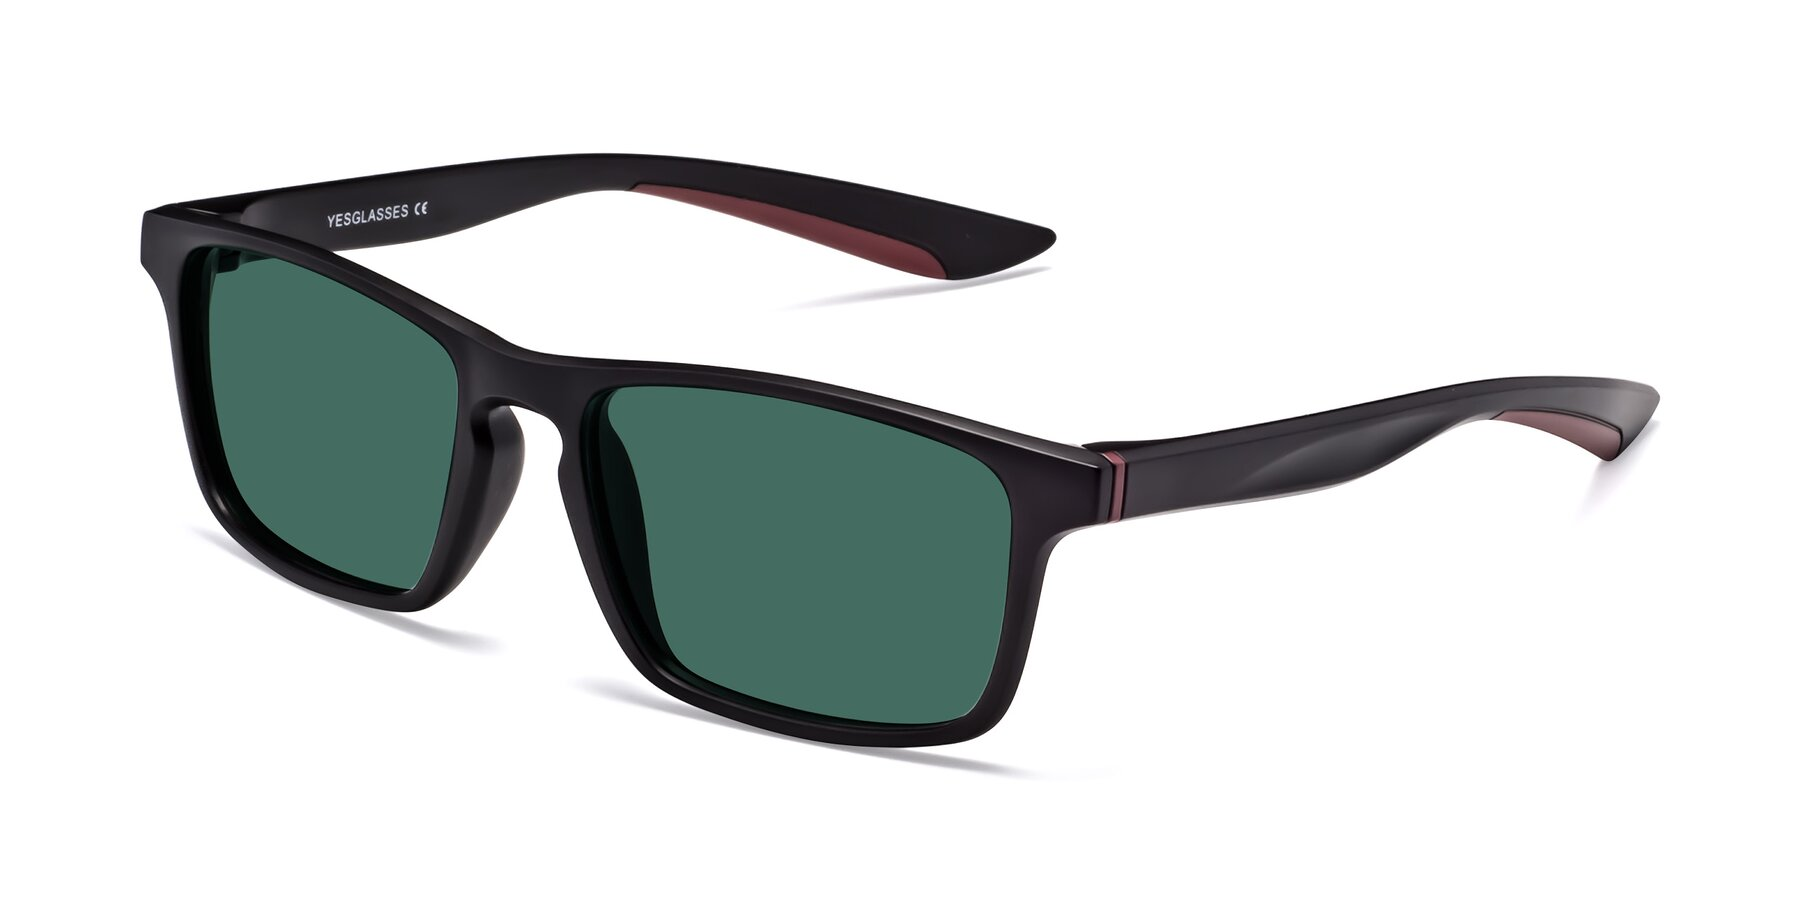 Angle of Passion in Matte Black-Wine with Green Polarized Lenses